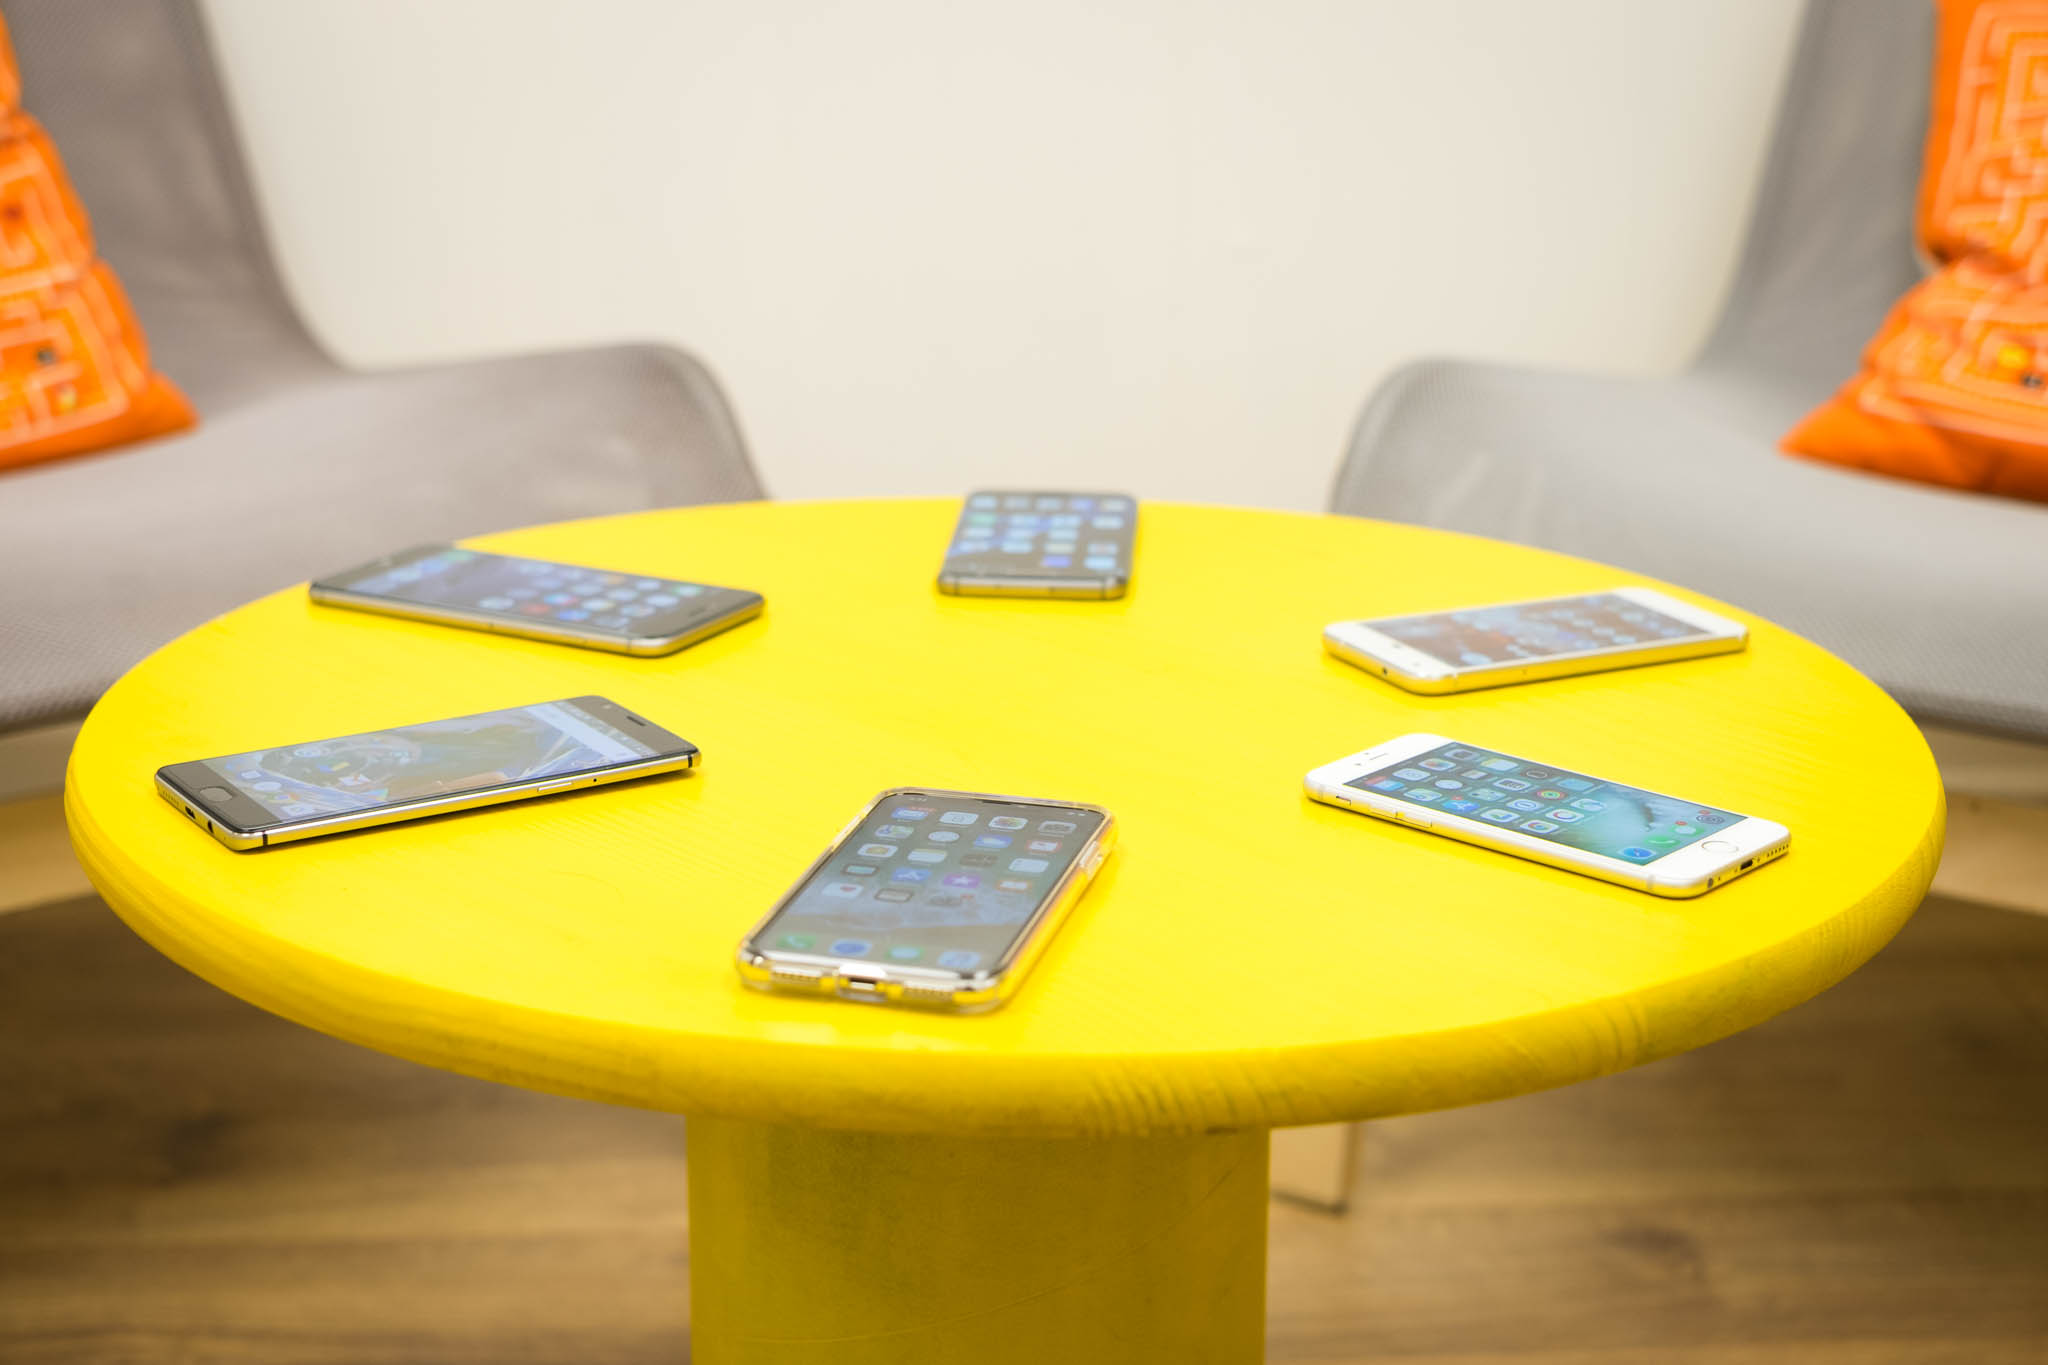 Image of six smart phones laying around a circular yellow table